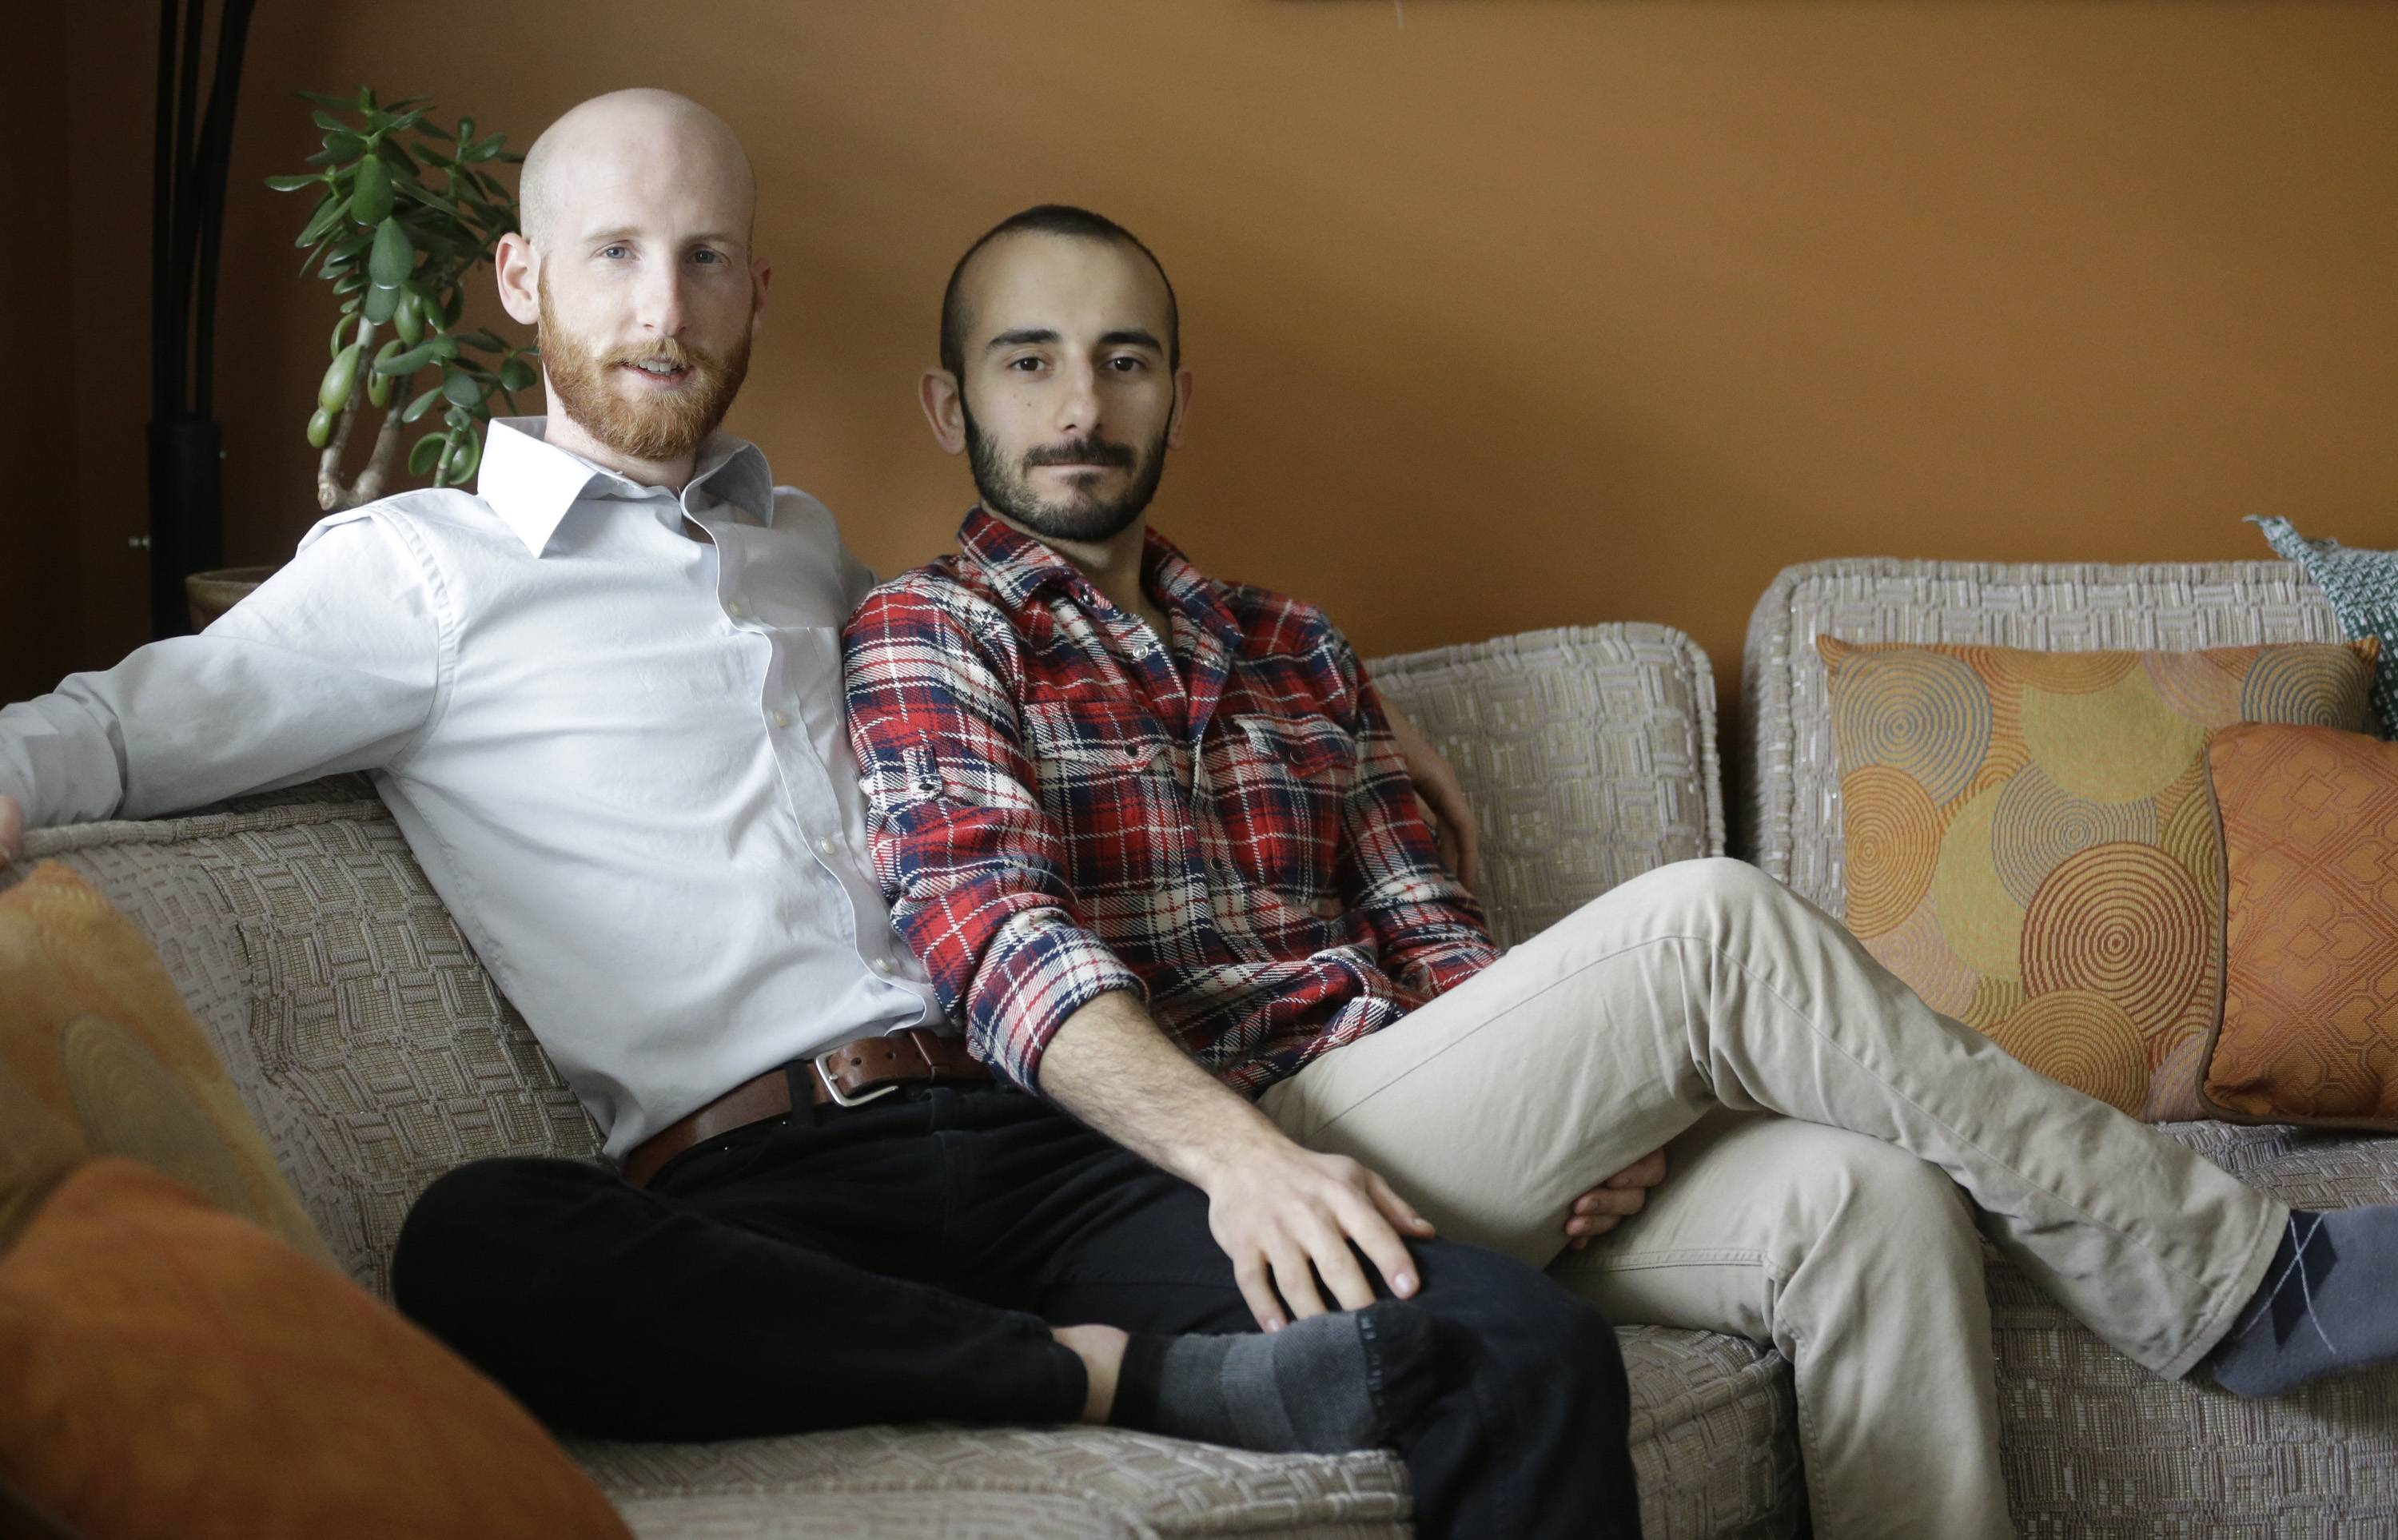 Derek Kitchen, left, and Moudi Sbeity have become the face of gay marriage in Utah. Kitchen and Sbeity were both raised in conservative religious families that shun gays, Kitchen in a Mormon home in Utah and Sbeity in a Muslim family in Lebanon.